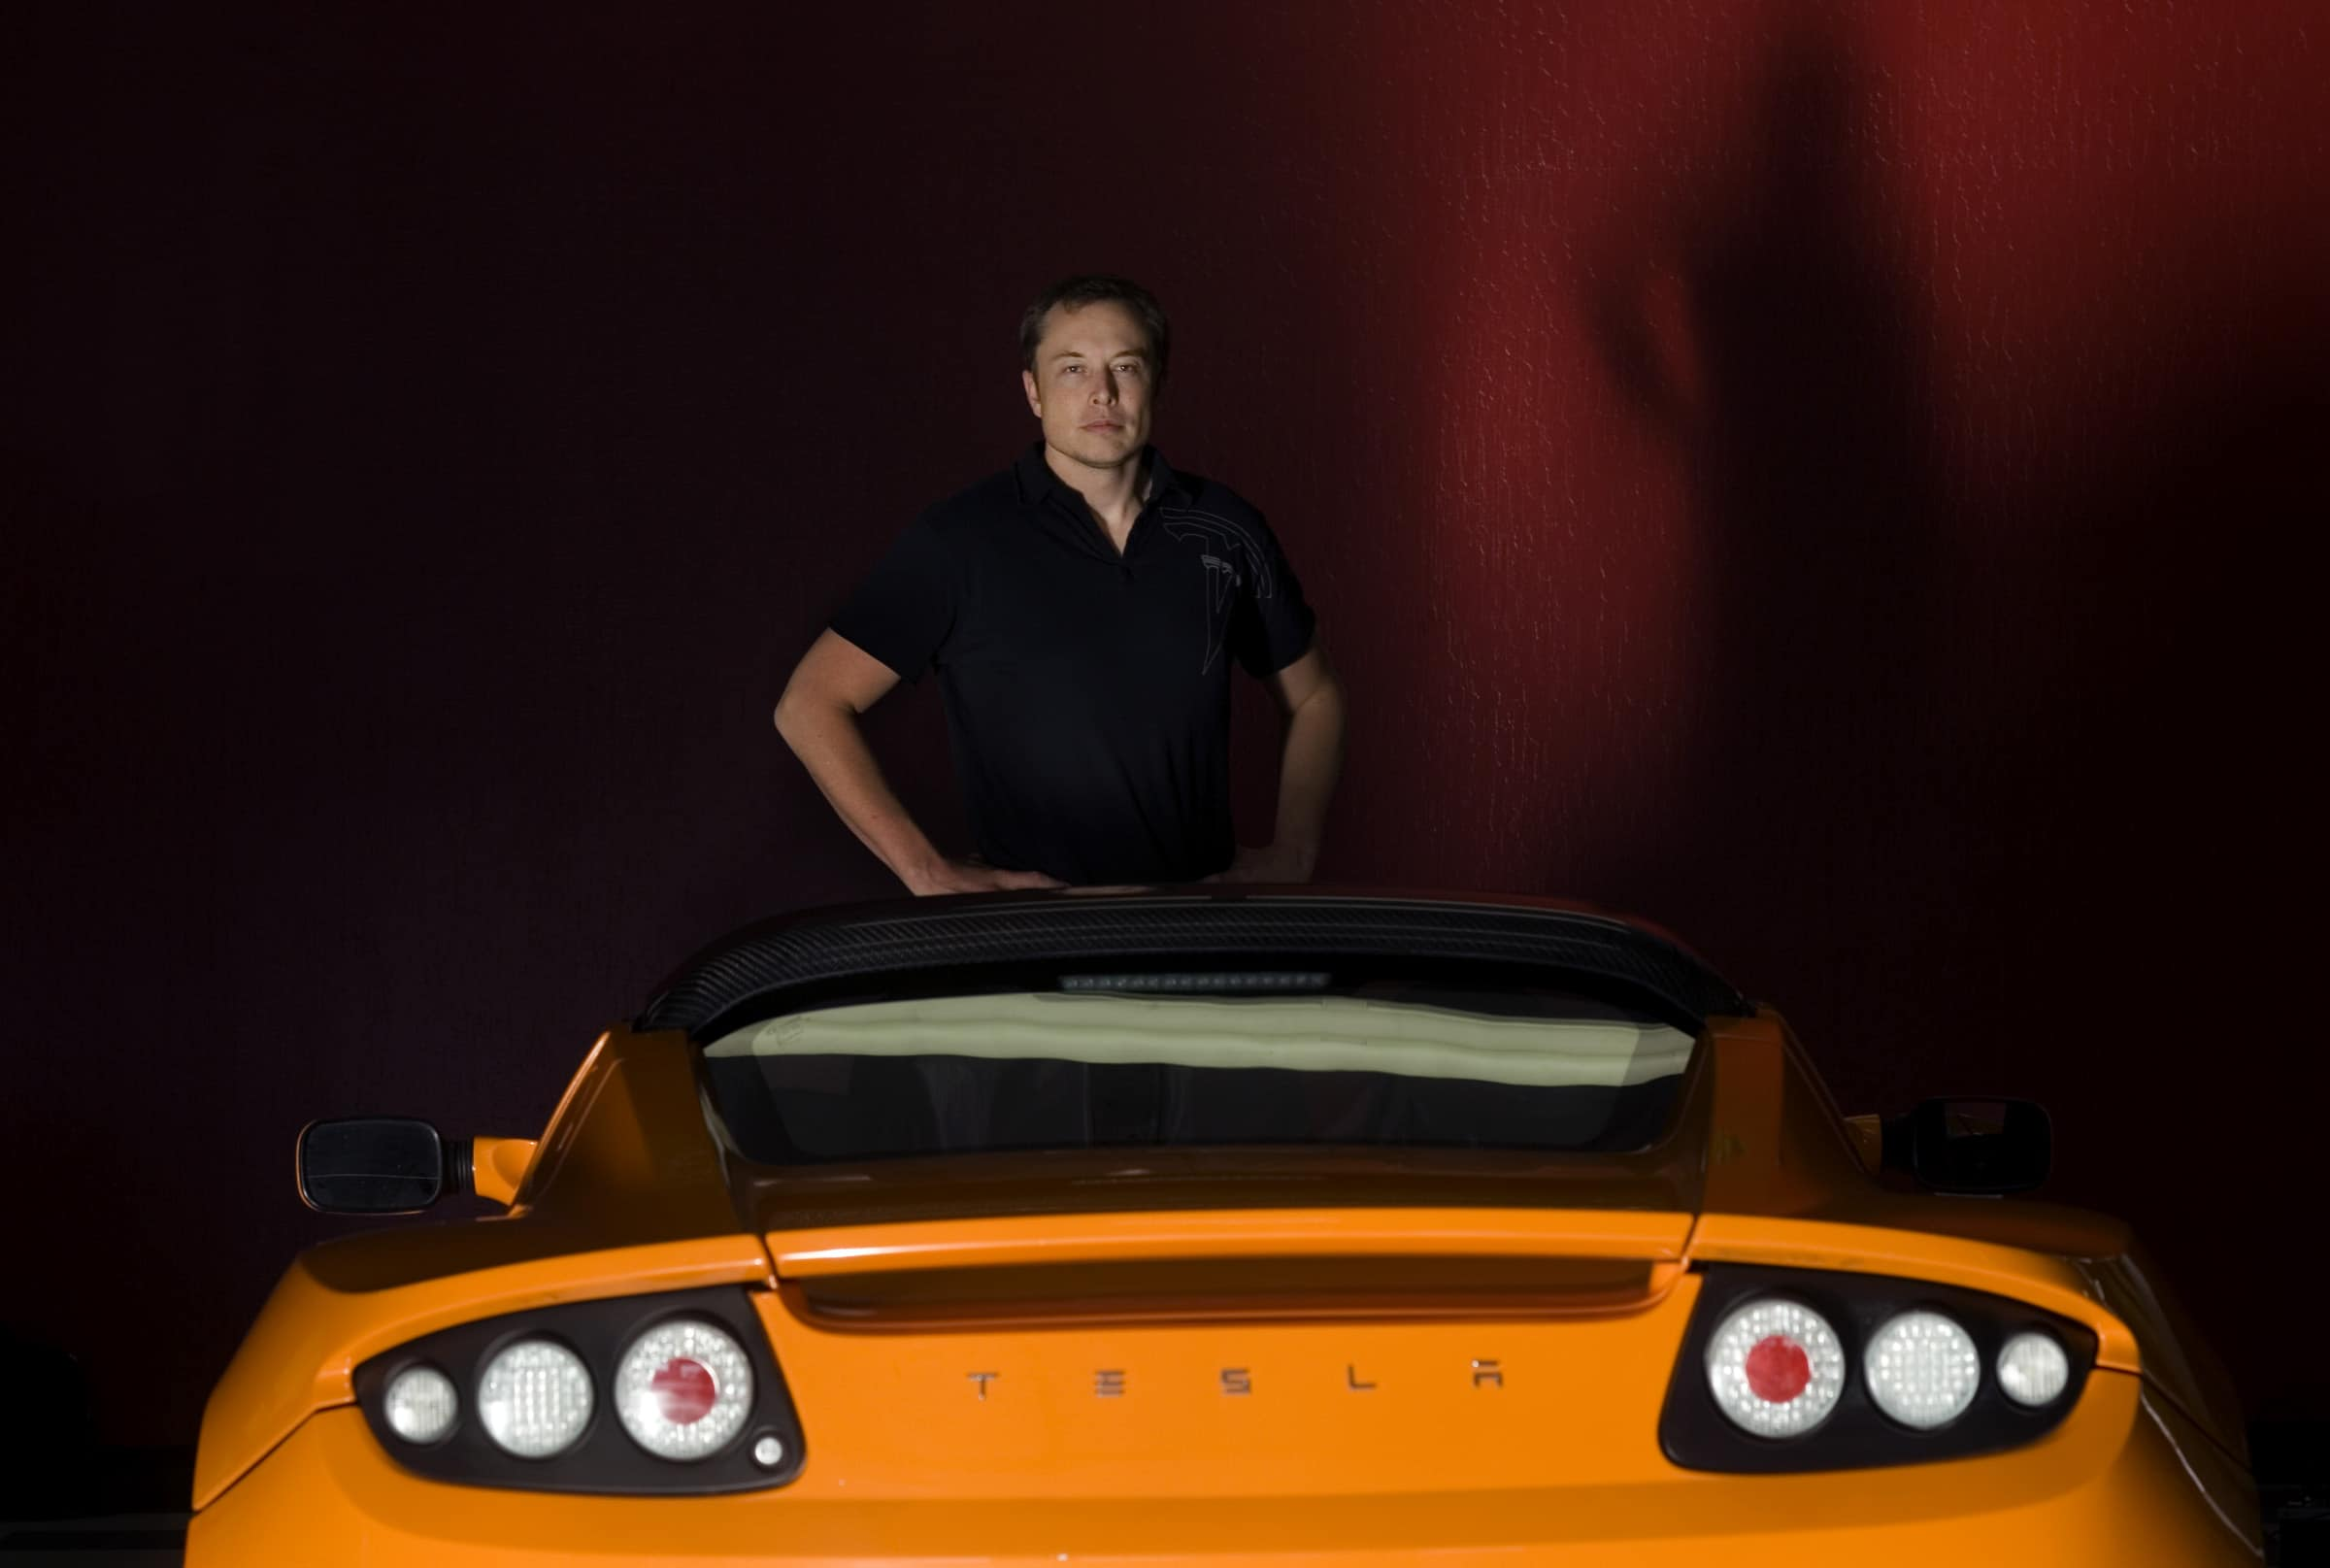 Elon Musk, CEO of SpaceX and chairman of Tesla Motors at Tesla's headquarters in San Carlos Tuesday Oct. 24, 3008.  Silicon Valley icon Musk became a billionaire founding PayPal, but he's out to do something even more important – help humanity reach beyon